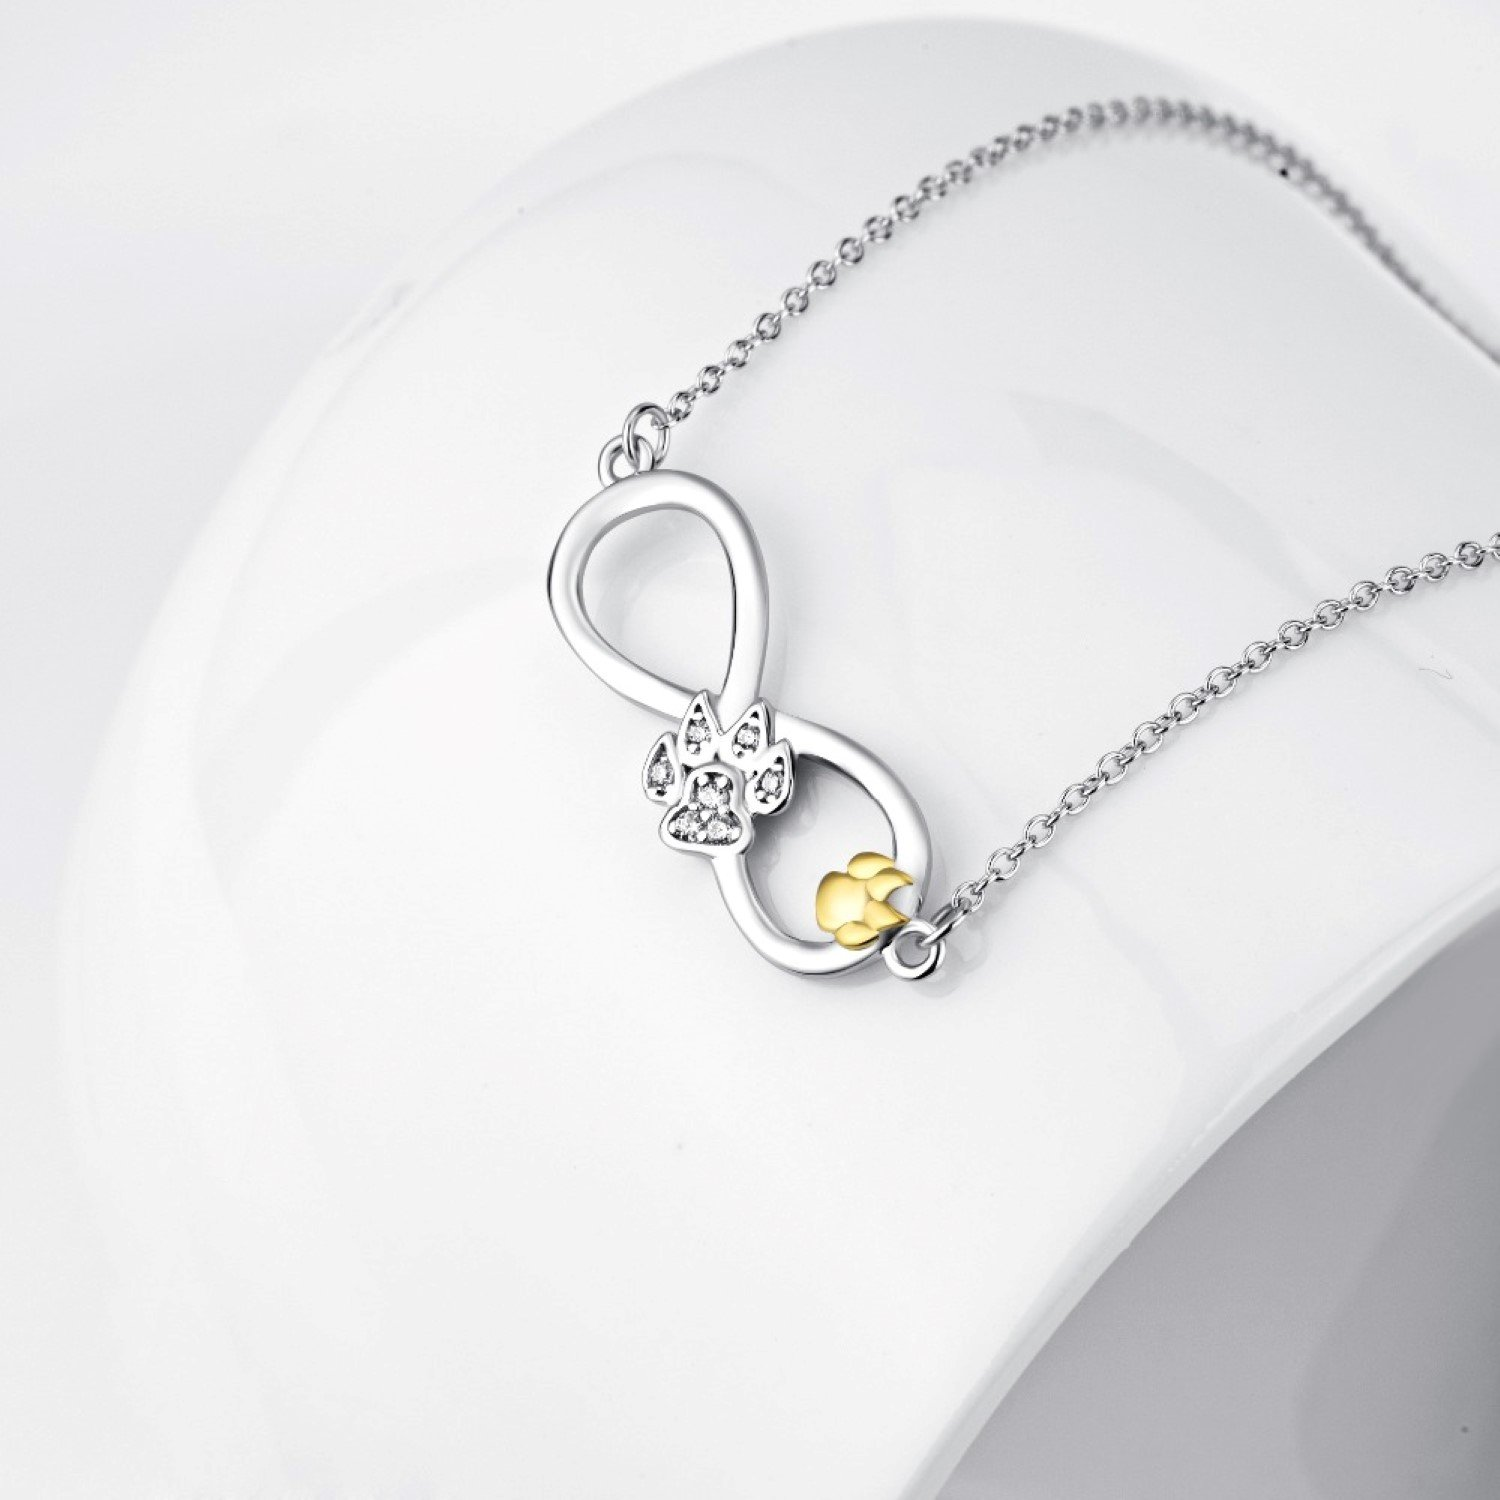 CS-DB Womens Necklaces by Silver Pendant Infinity Love Crystal CZ Gold Dog Paw Print Charm Girls